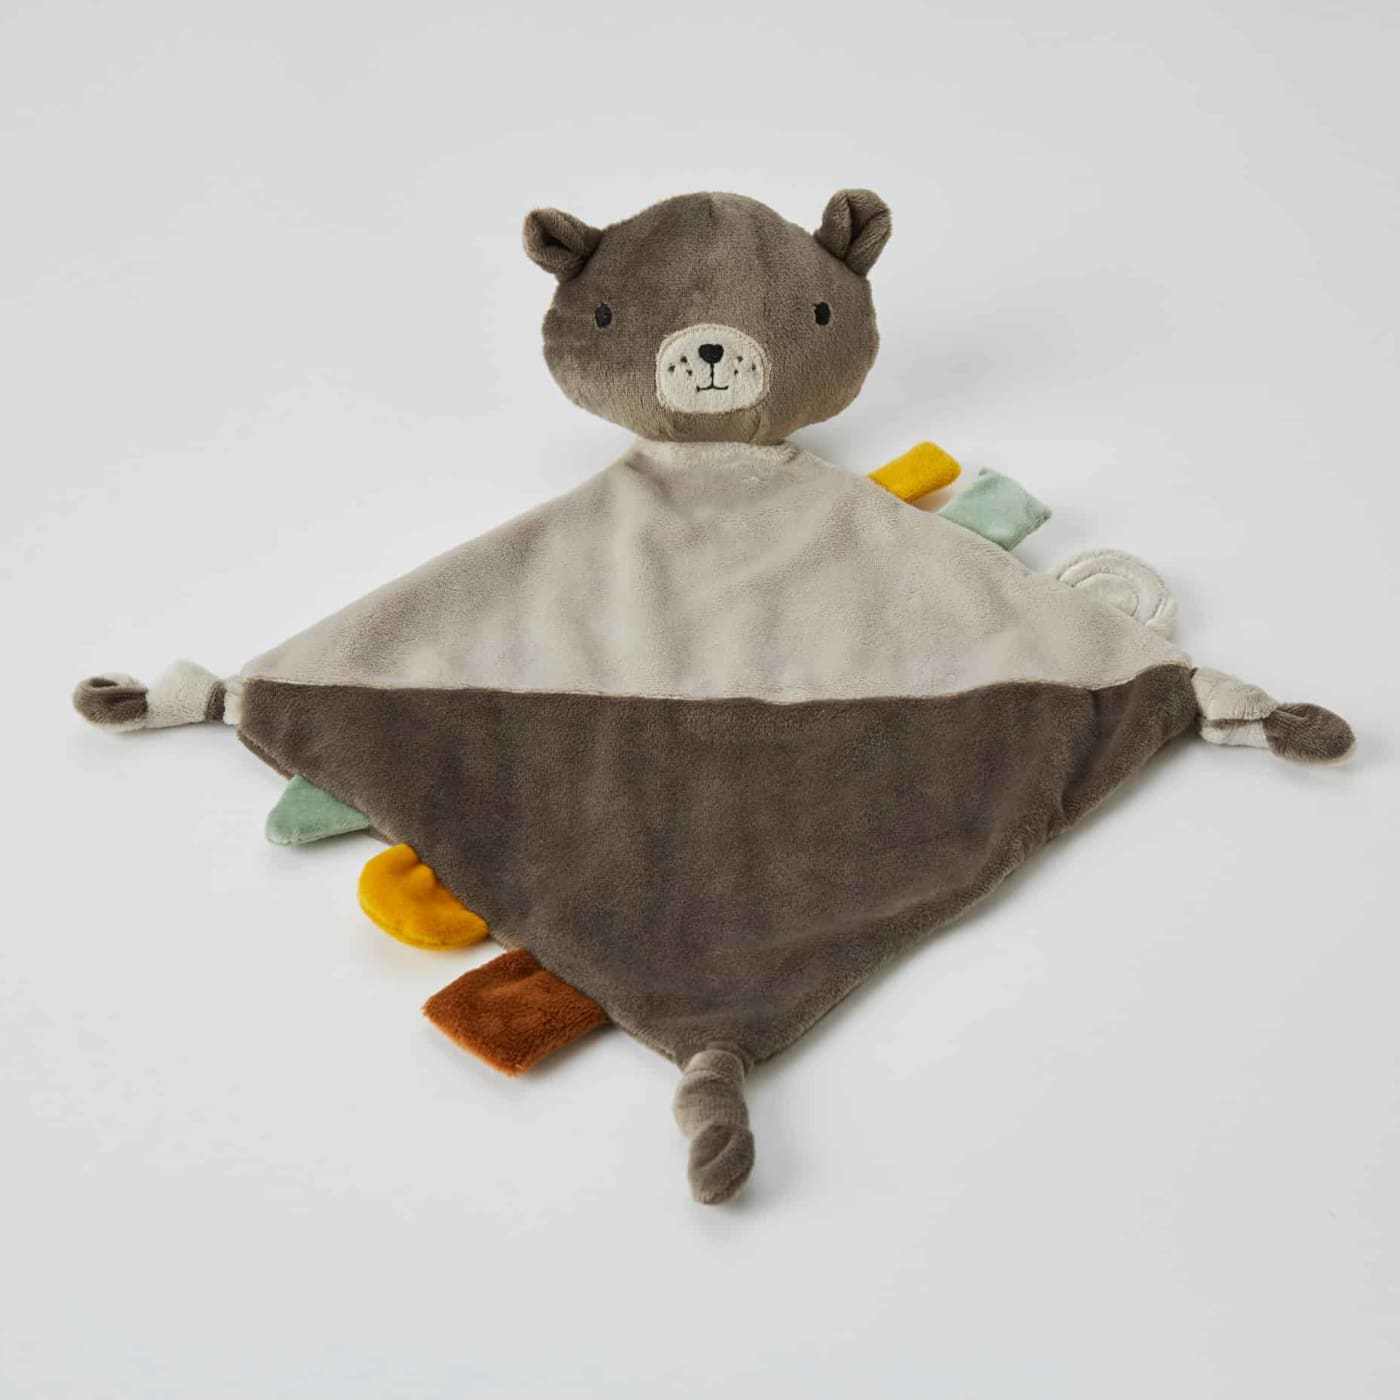 Nordic Kids Comforter Soother - Bailey Bear - 23cm / Bear - TOYS & PLAY - BLANKIES/COMFORTERS/RATTLES